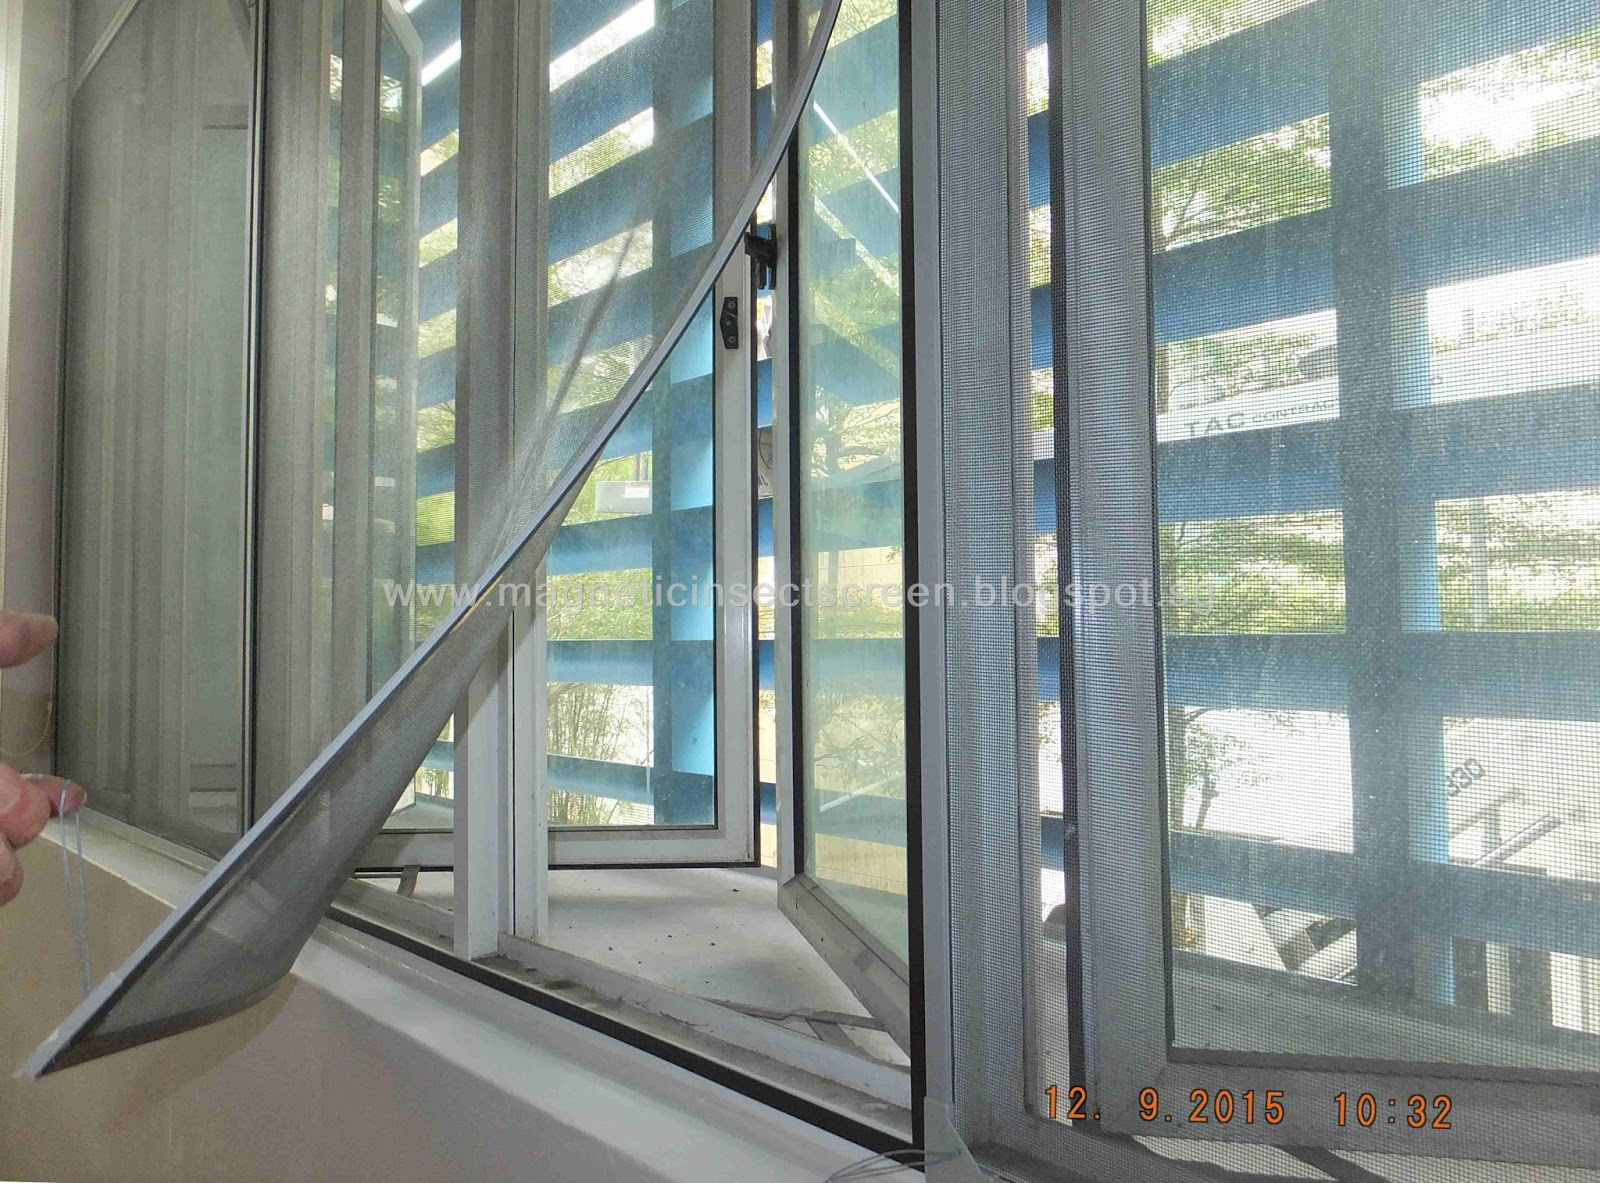 Diy Mosquito Net For Windows Diy Magnetic Insect Screen Singapore Installation At